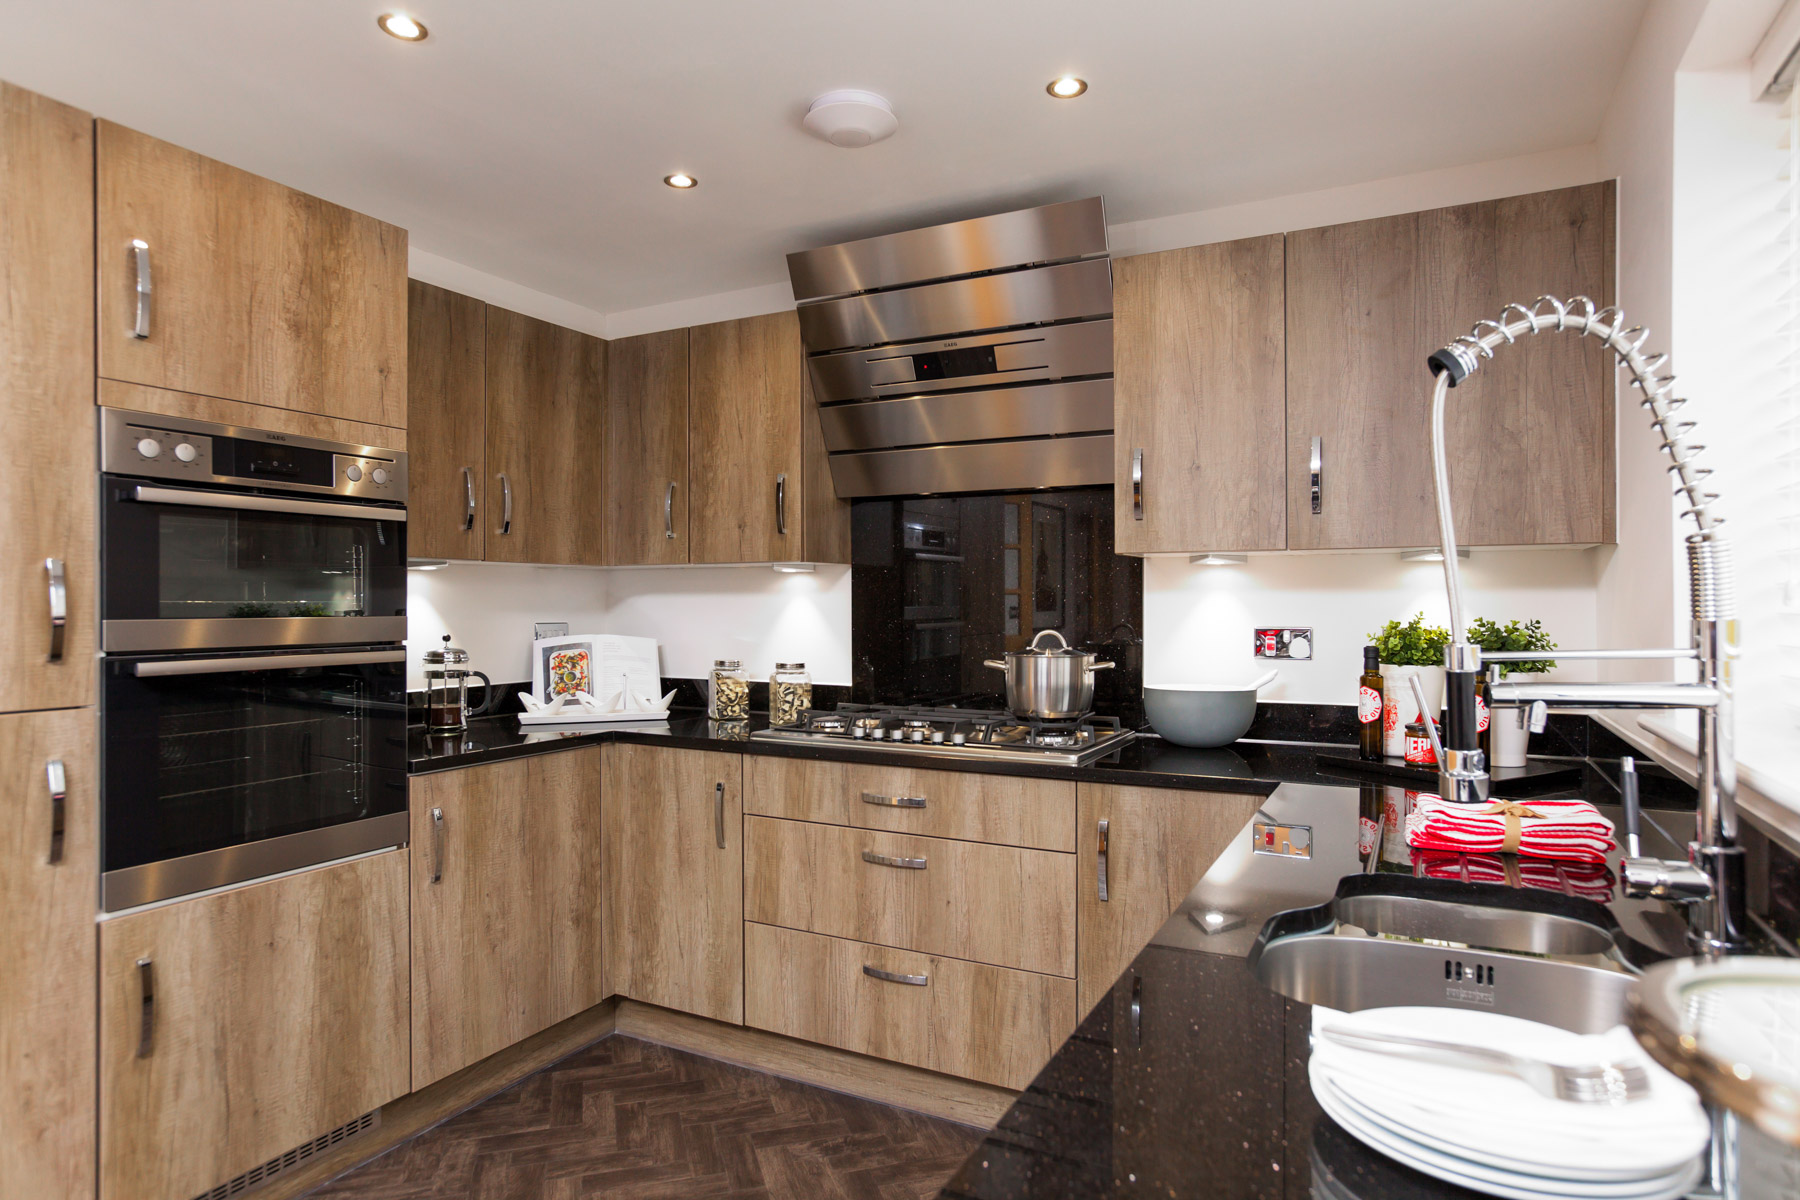 008_SG_Downham_Kitchen